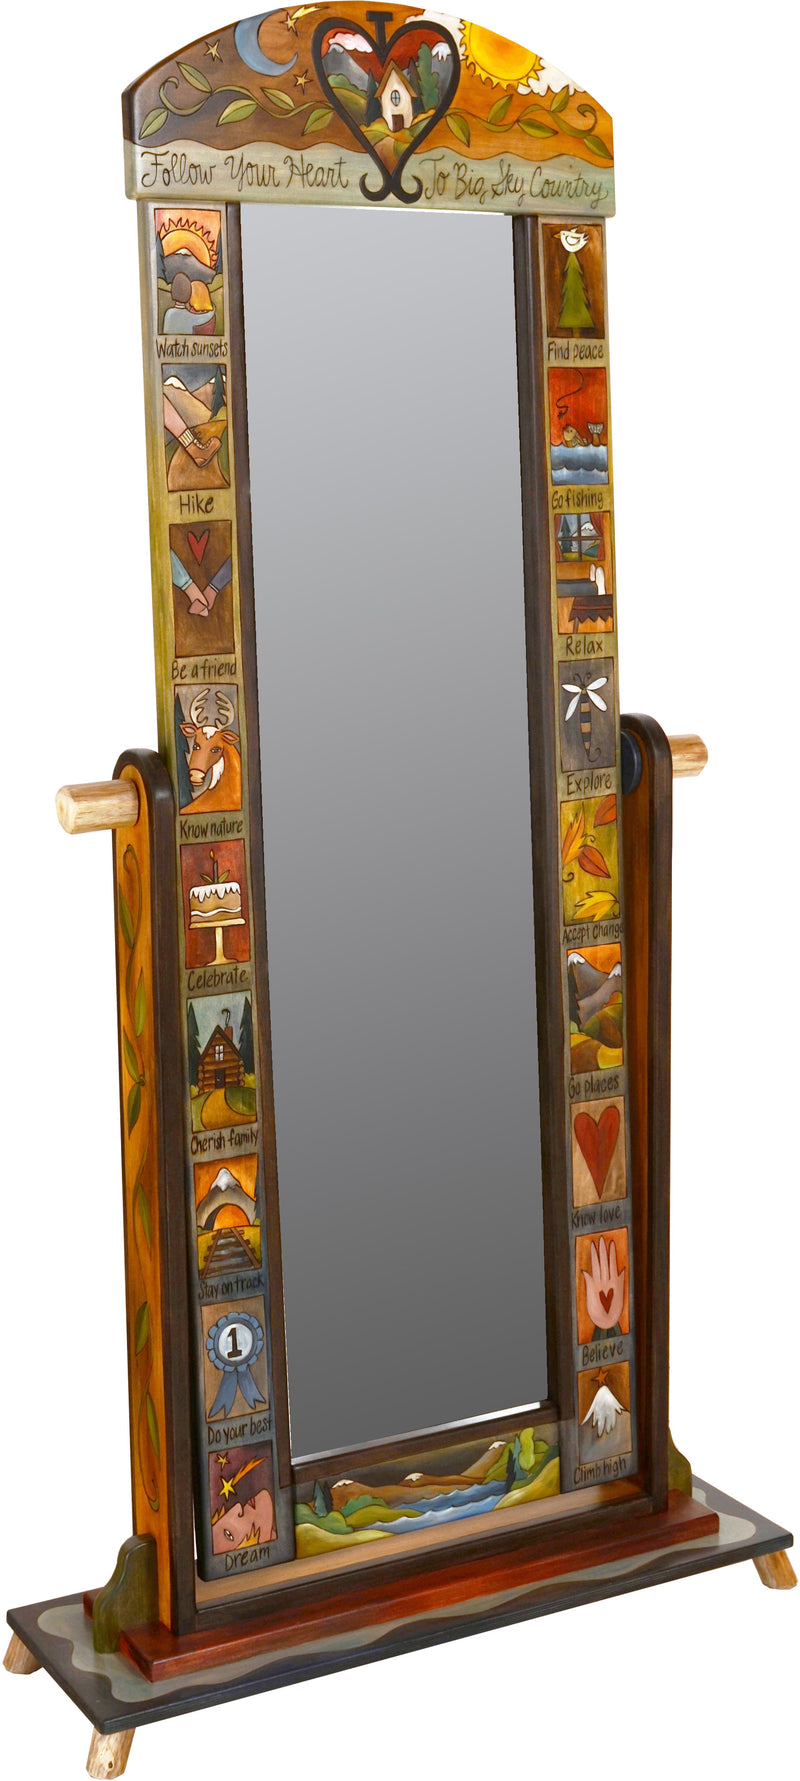 "Wardrobe Mirror on Stand –  ""Follow your Heart"" mirror on stand with sun and moon over cozy home in heart motif"